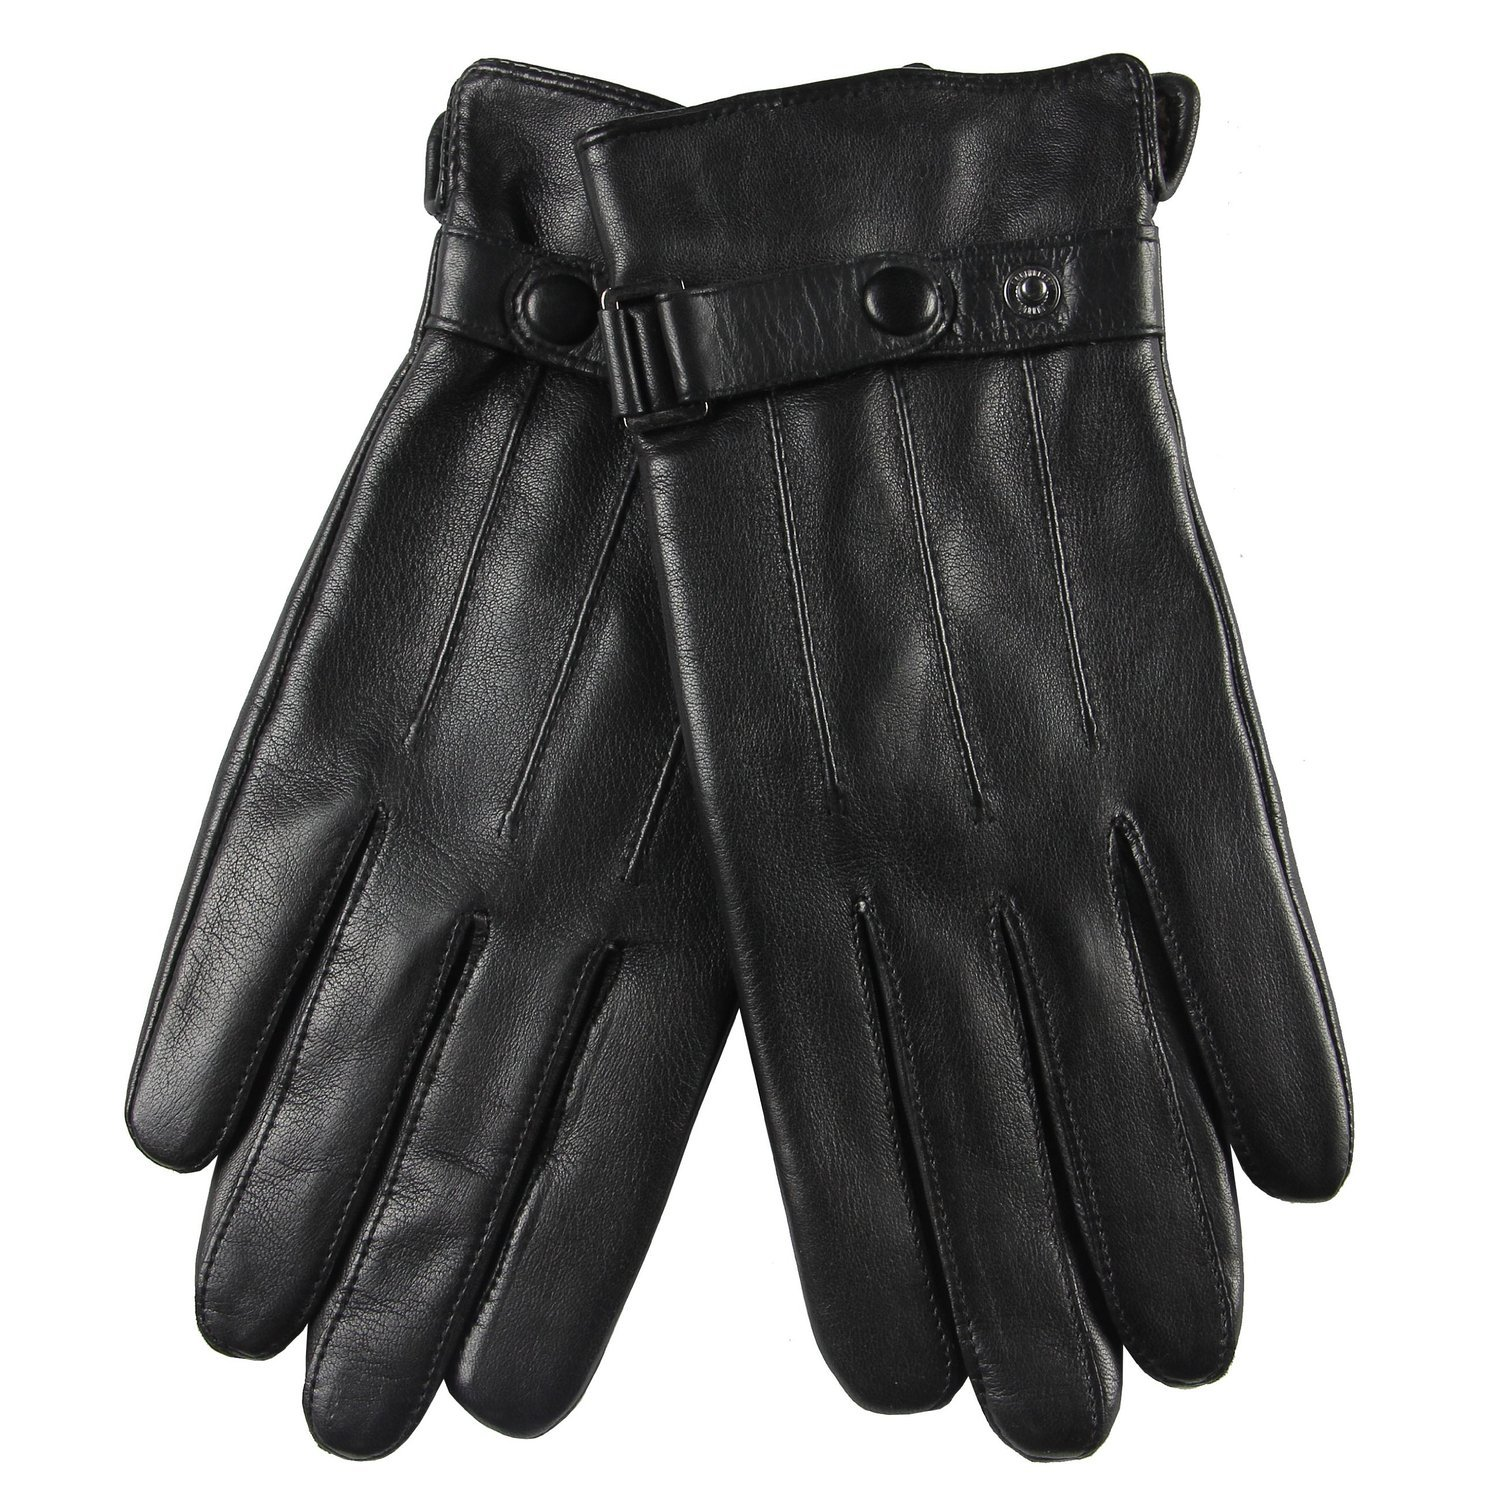 Plain leather gloves mens - Warmen Classic Men S Goatskin Leather Driving Unlined Daily Gloves Plain Style